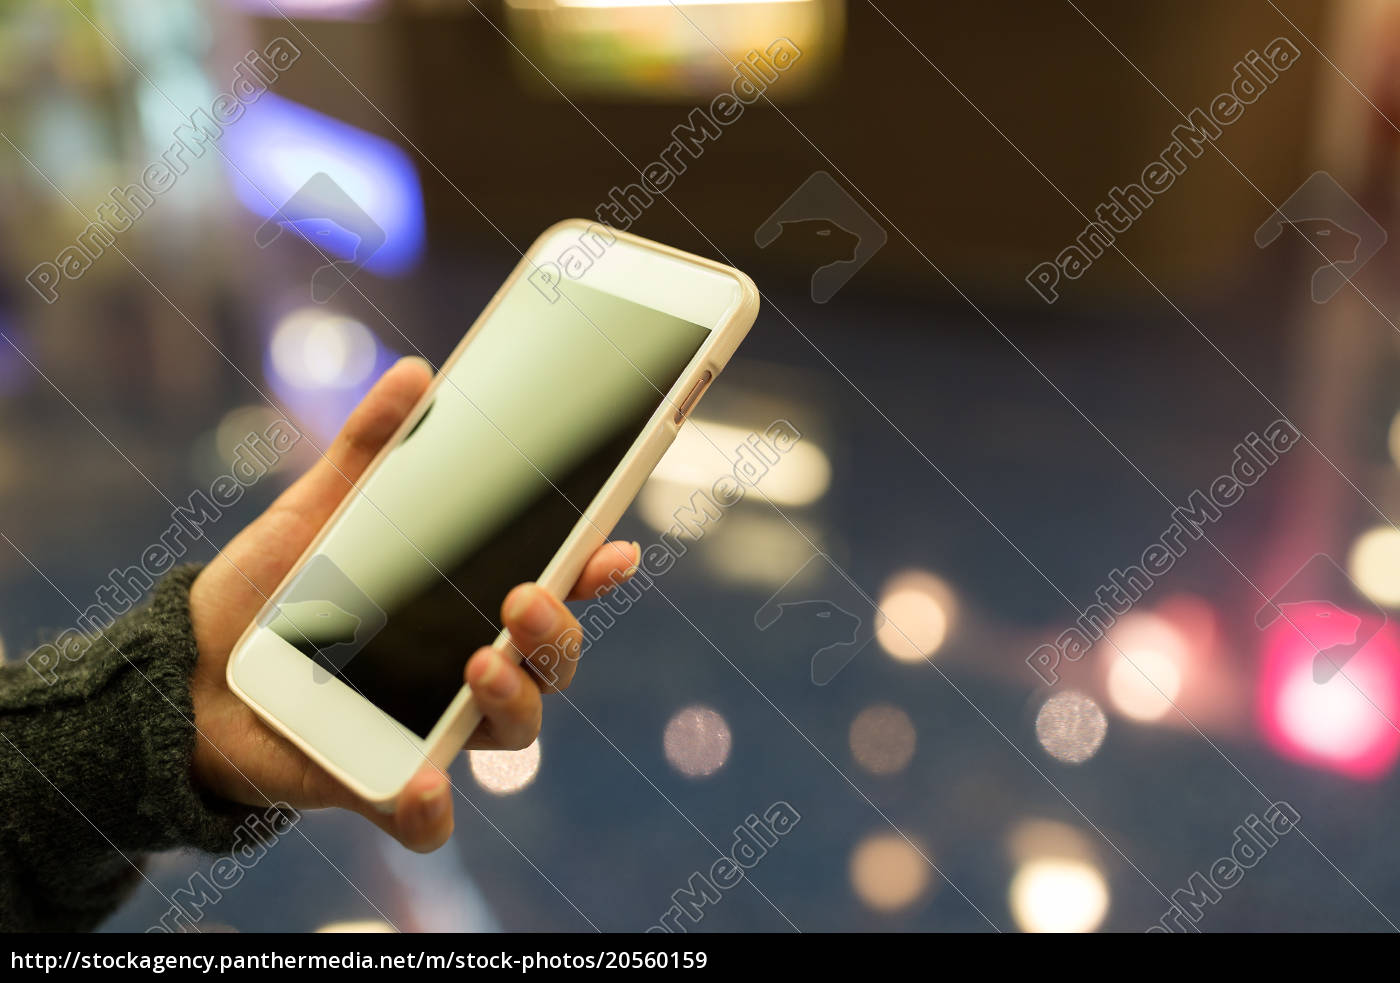 woman, holding, cellphone - 20560159